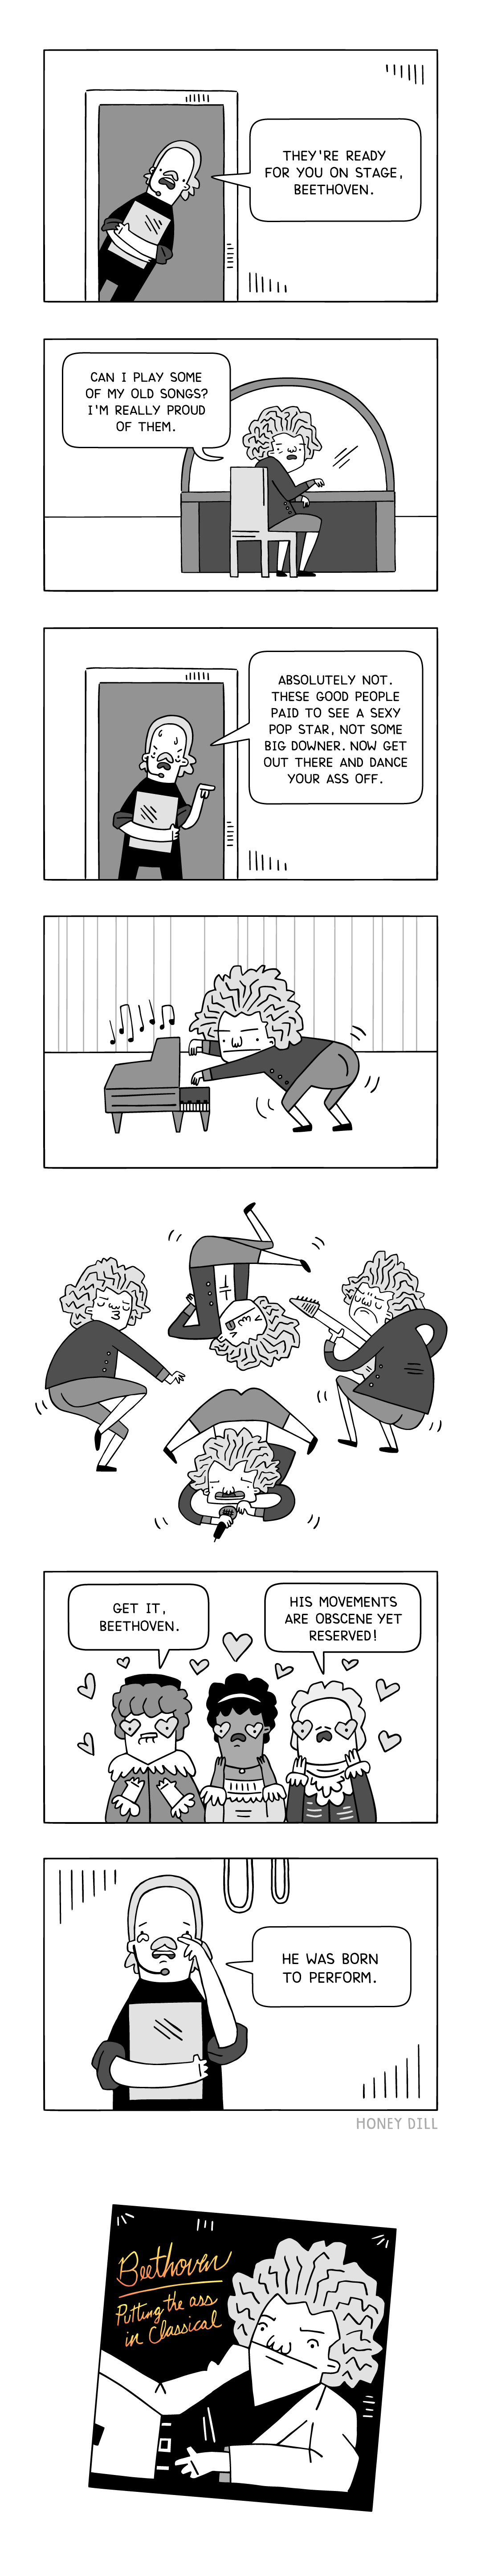 beethoven-1080.png